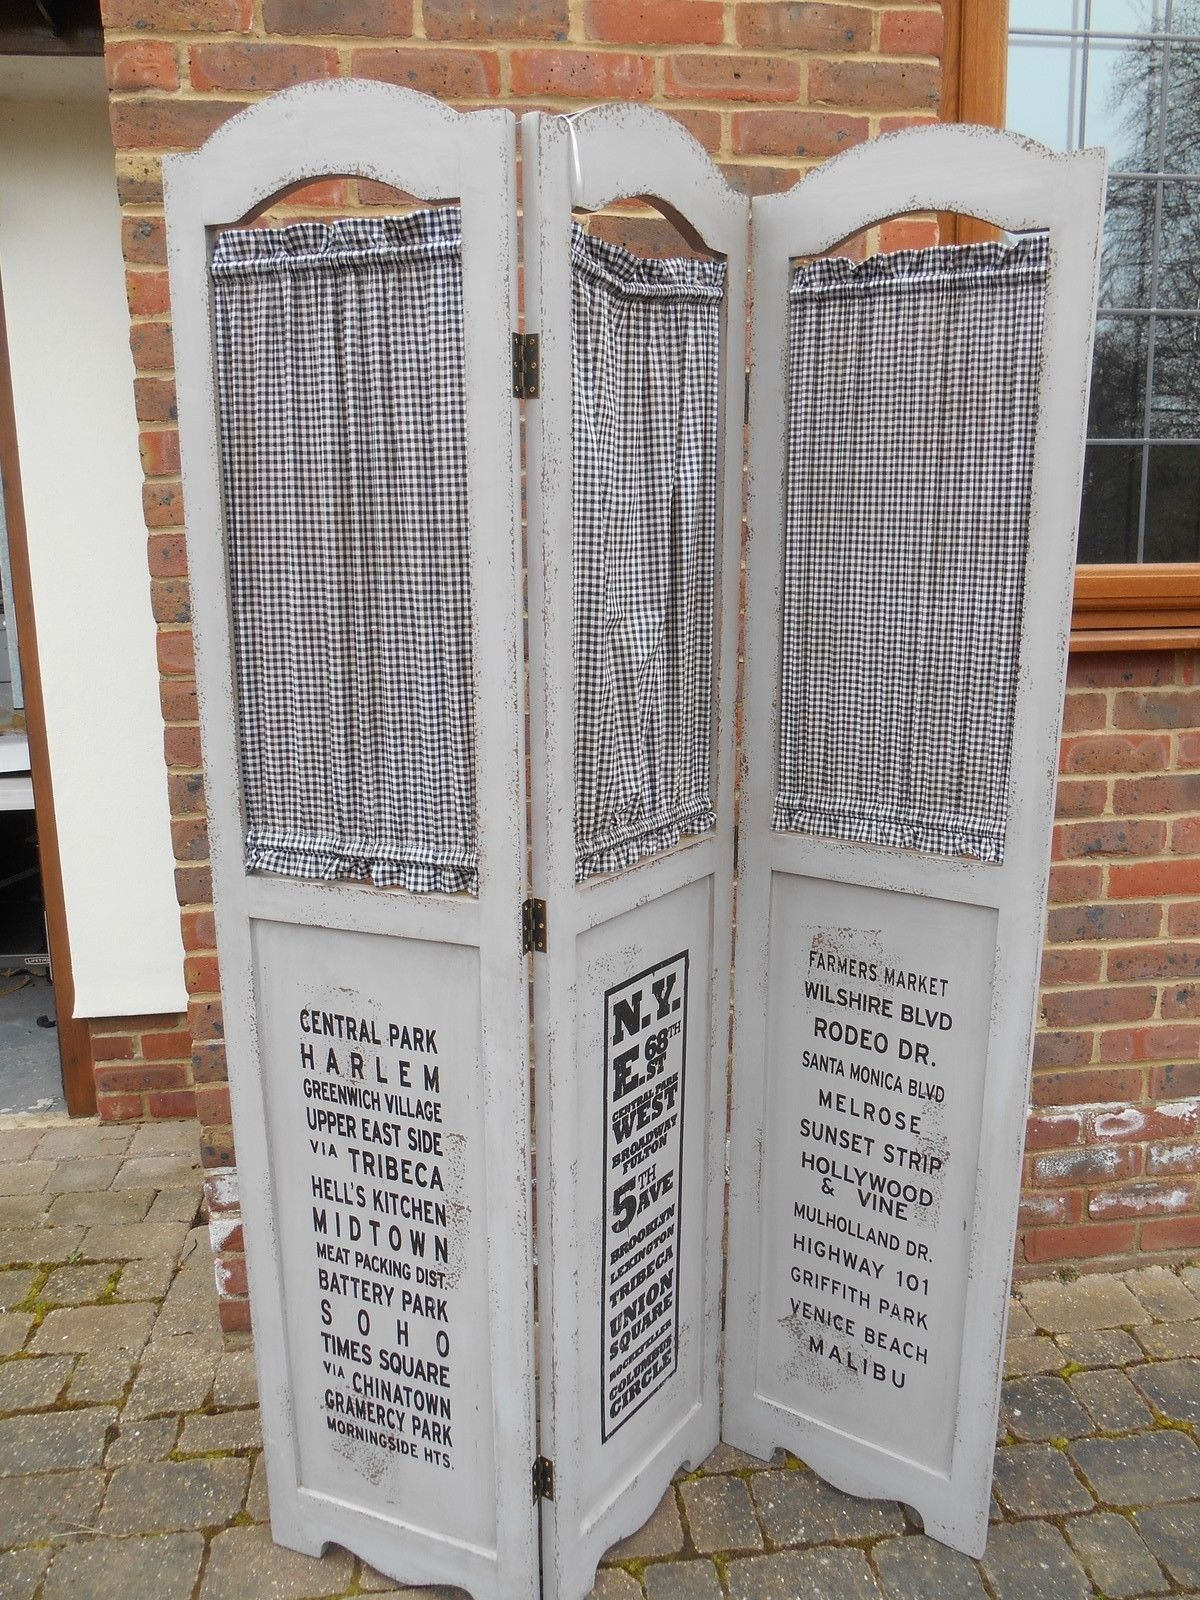 SHABBY CHIC PAINTED 3 PANEL WOOD FOLDING PRIVACY SCREEN ROOM DIVIDER  PARTITION | eBay - Biombo - Folding Screen Screens, Shabby And Room